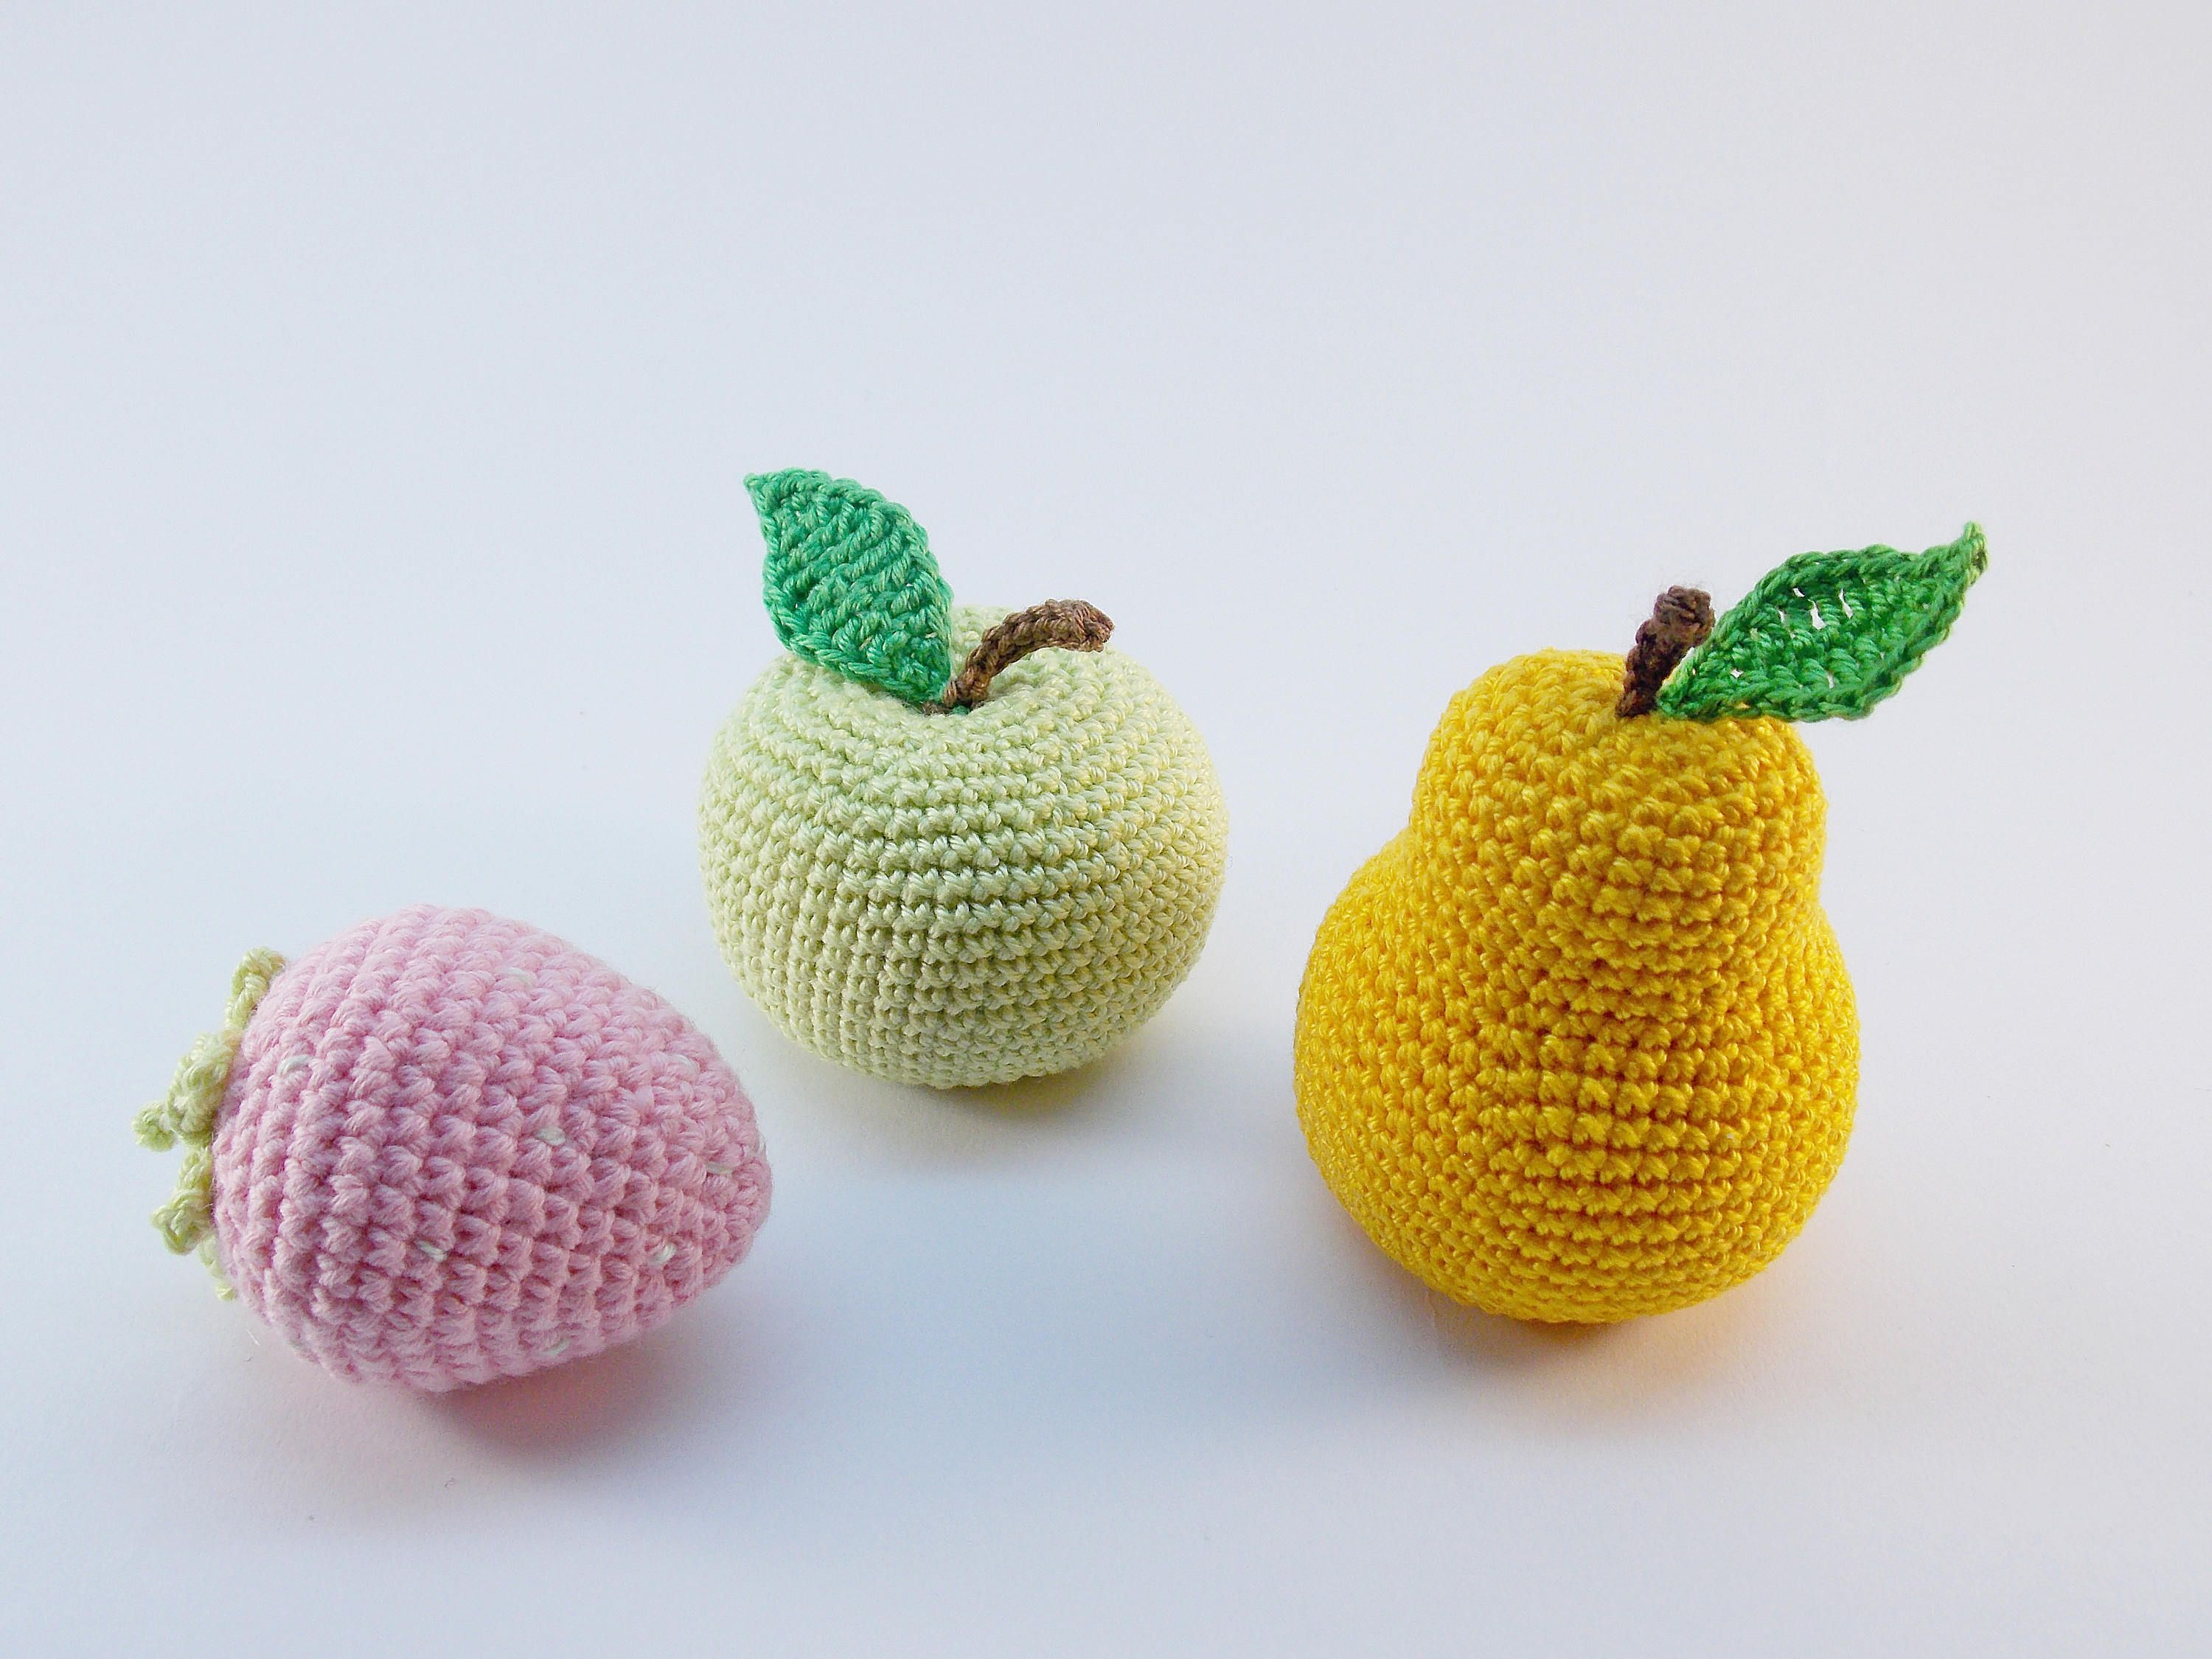 3pieces Crochet fruits Sensory toys kids learning toys baby